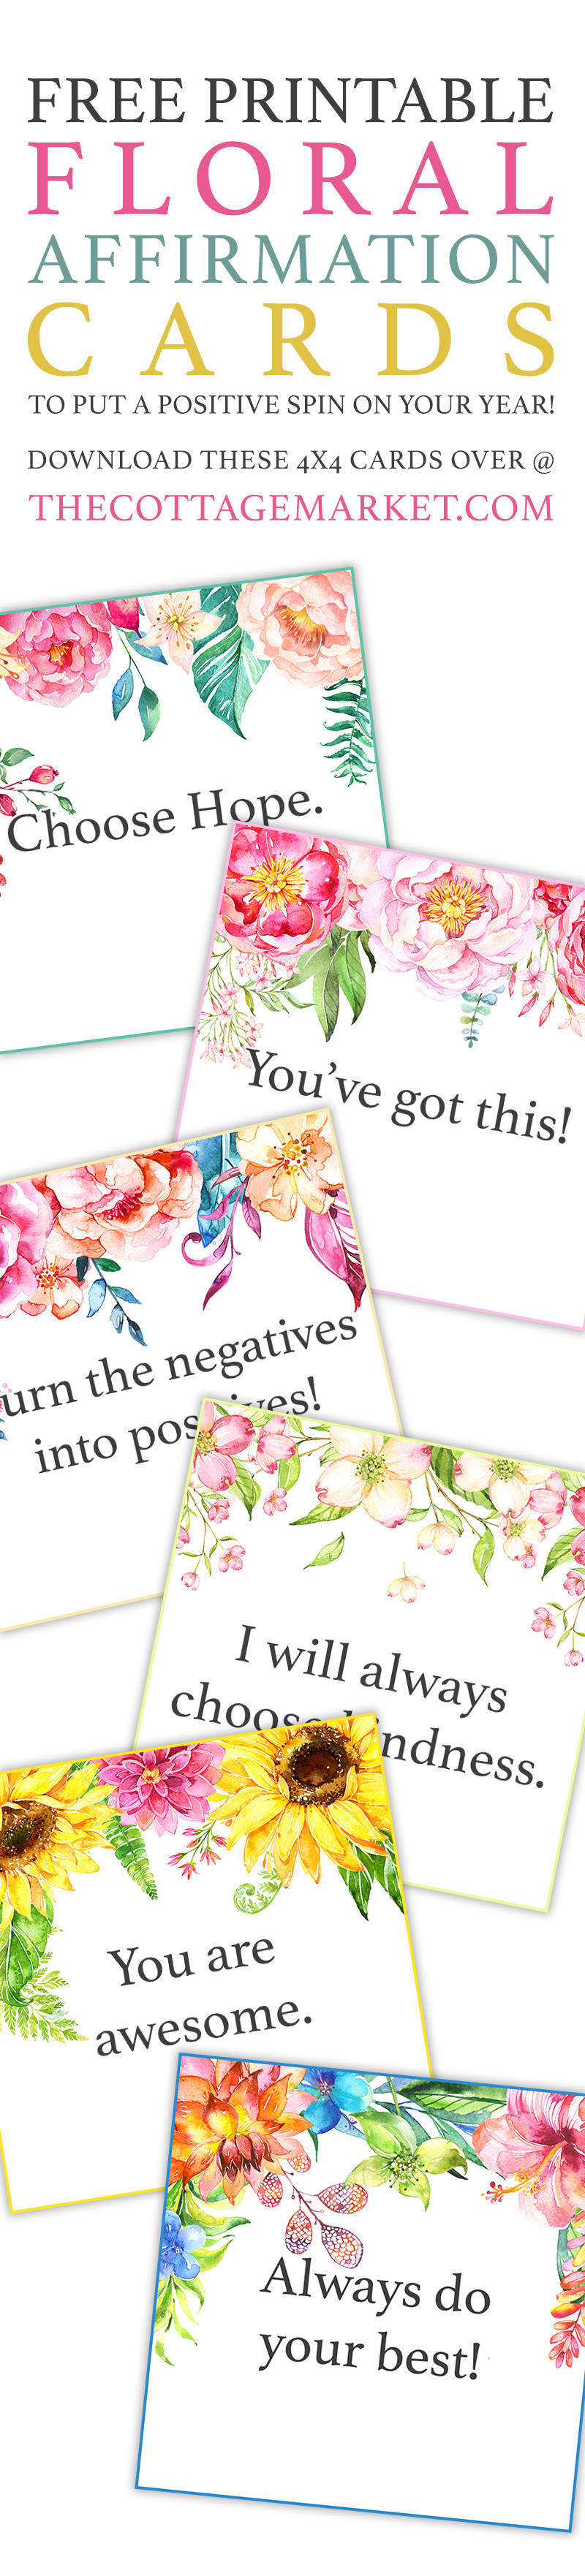 image about Affirmation Cards Printable named Cost-free Printable Floral Confirmation Playing cards /// Toward Position a